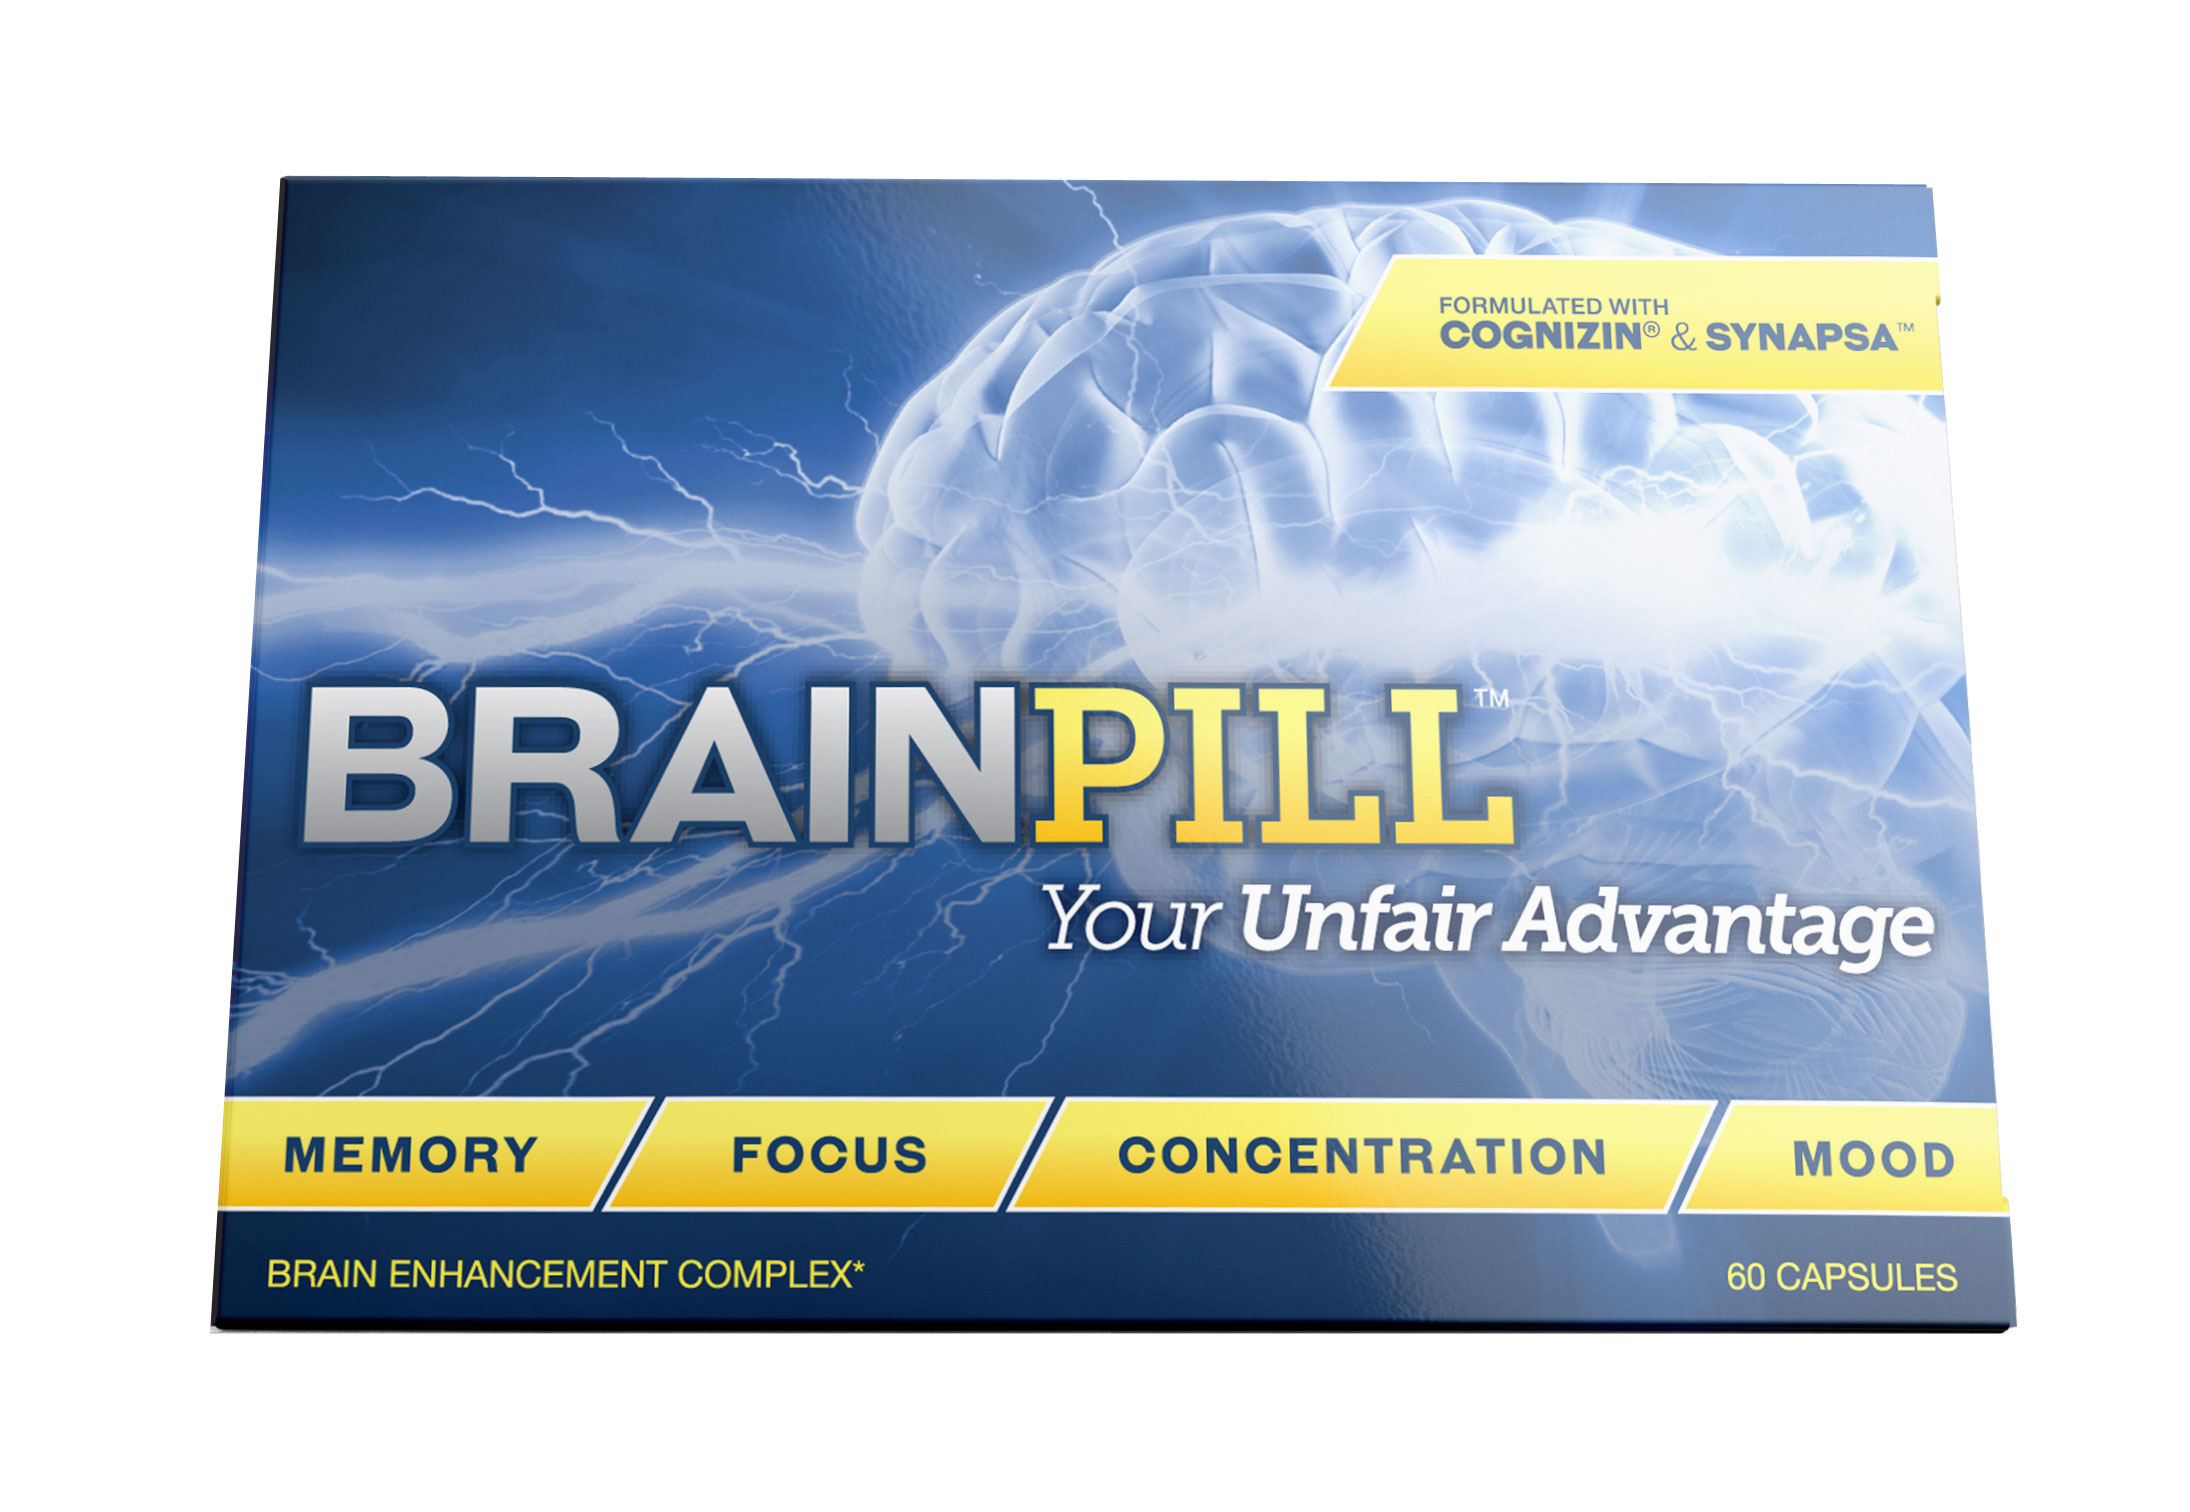 BrainPill for Memory and Focus